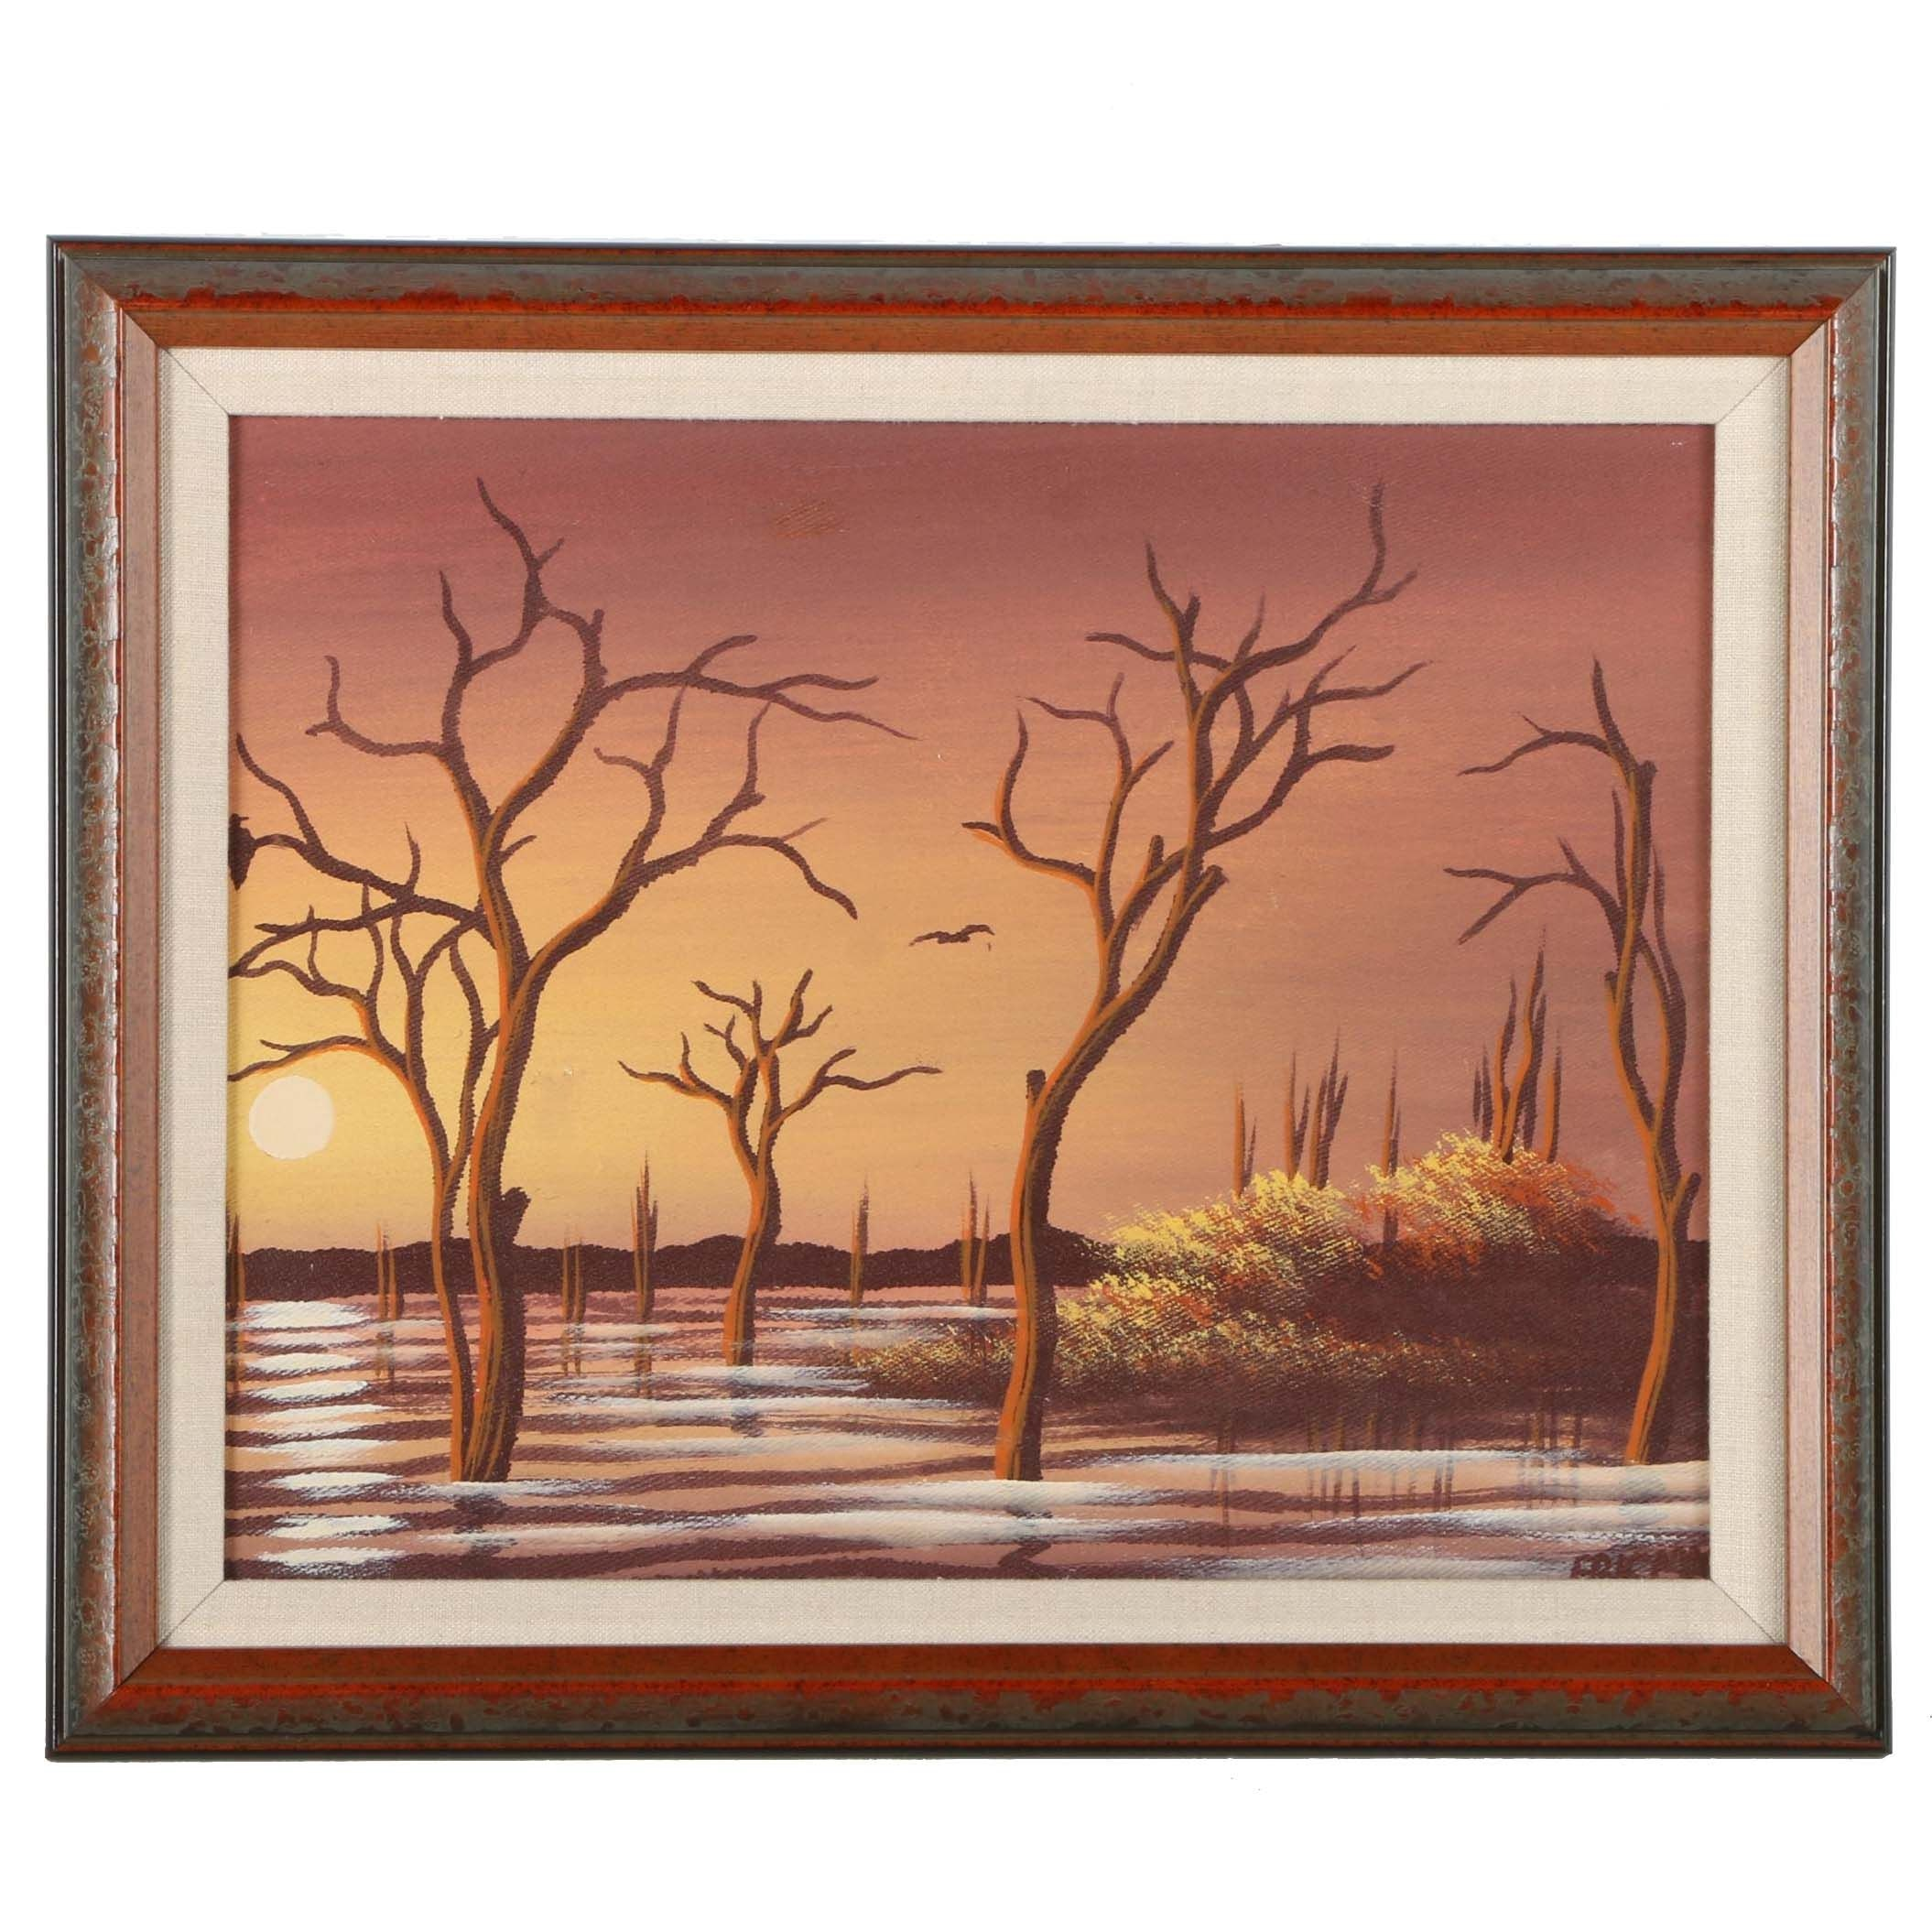 Acrylic Painting on Canvas Board of Trees Rising Above the Shallows